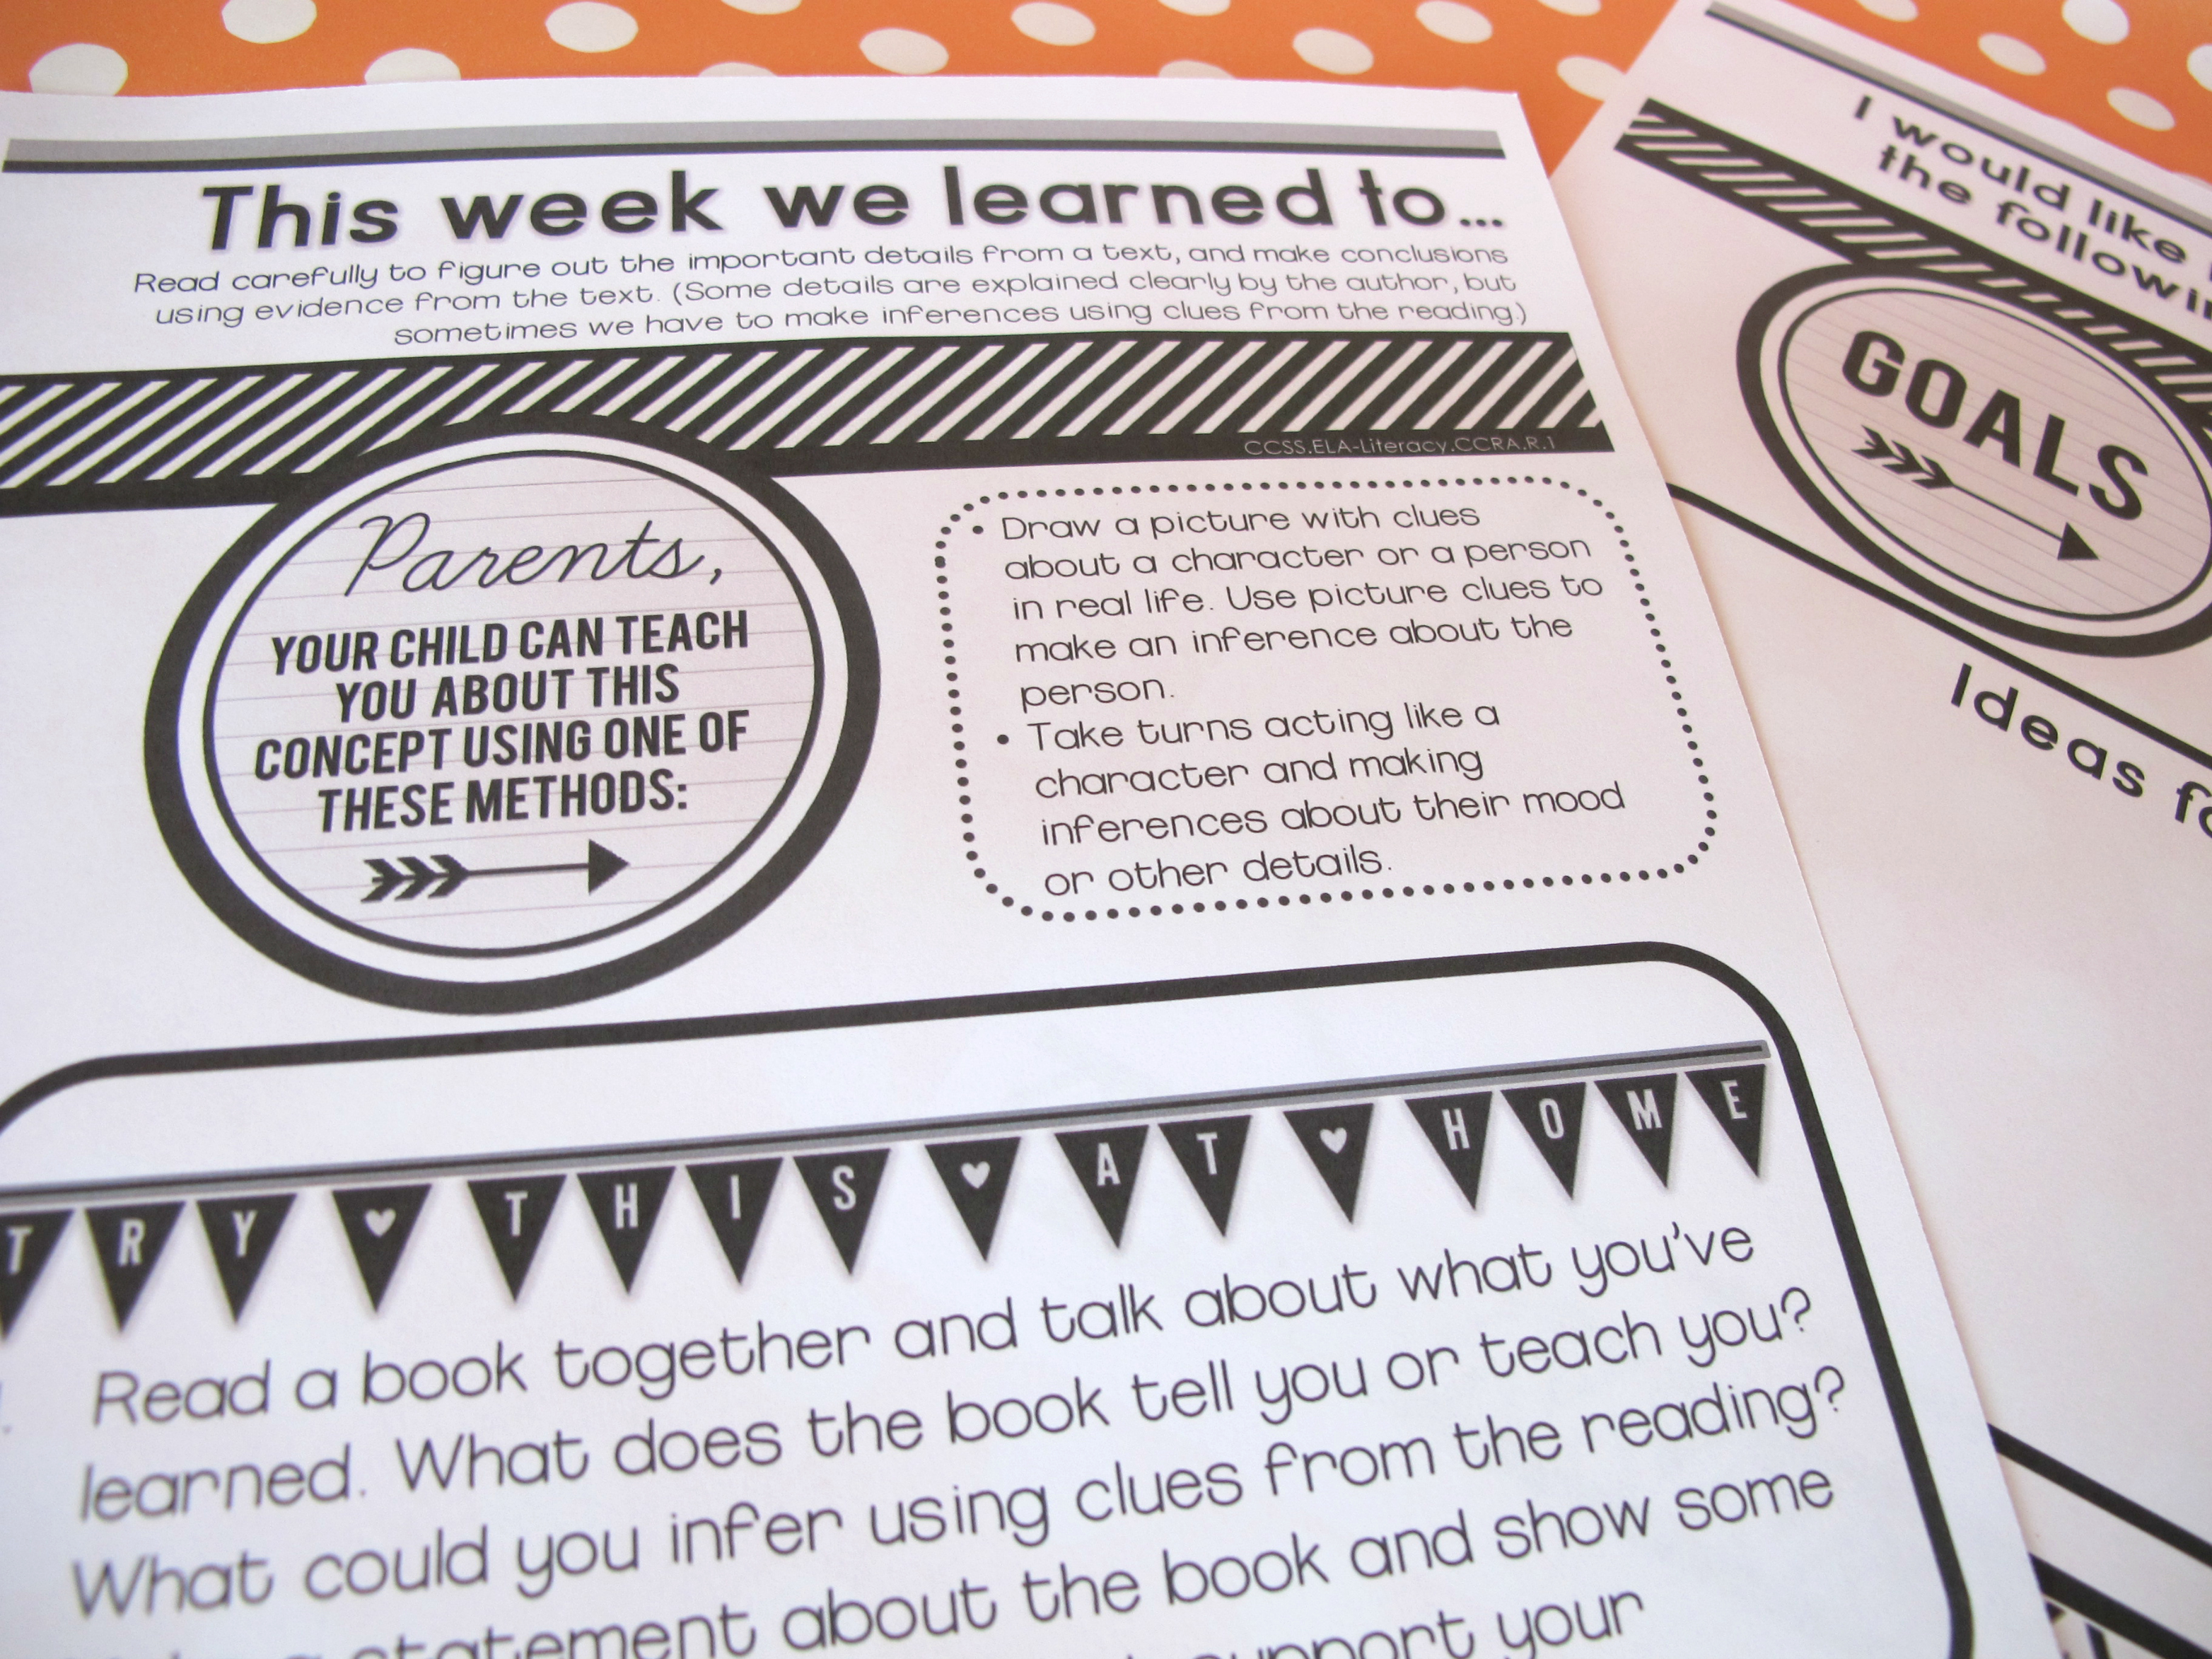 General Home Learning Resources - Erin Wing